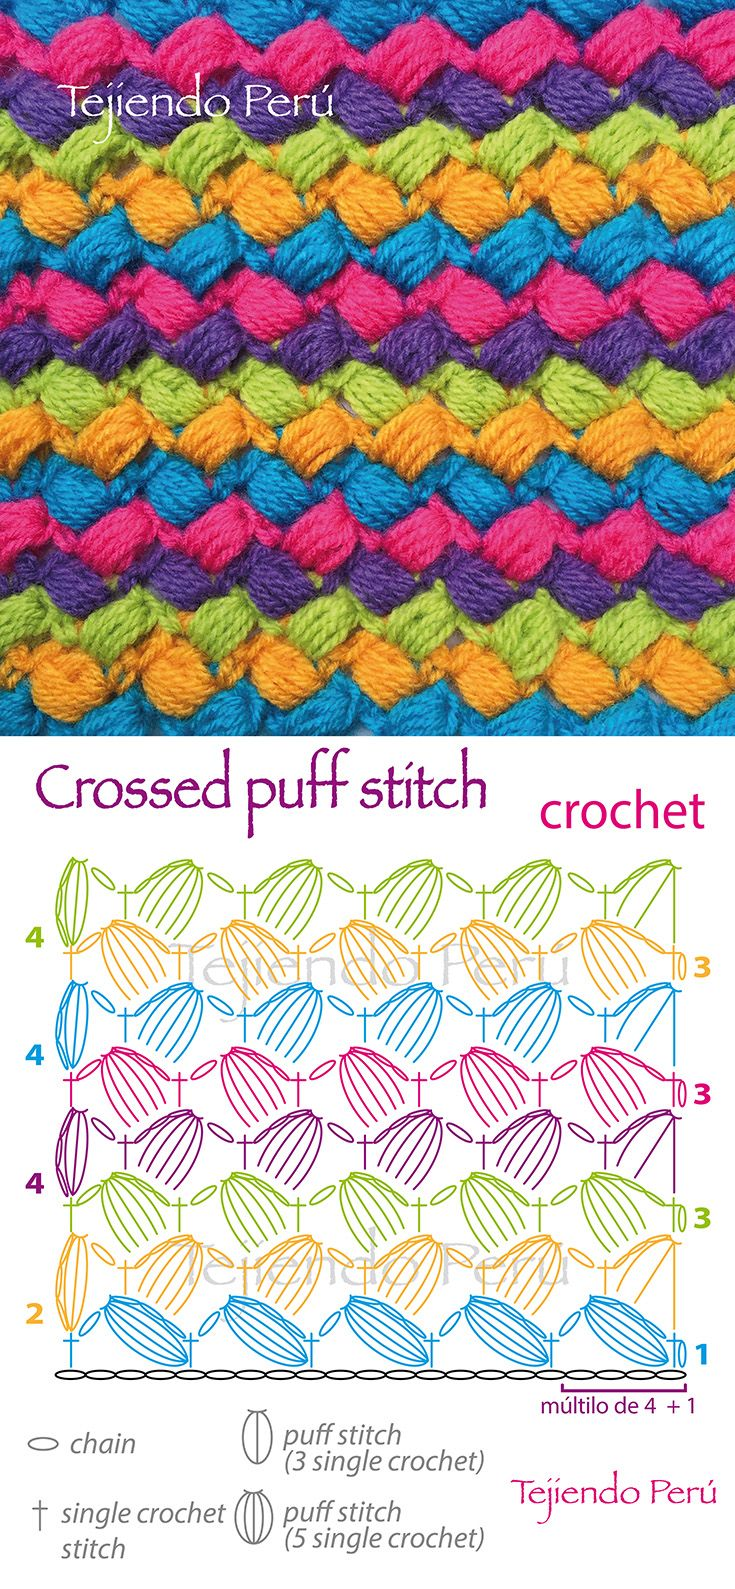 Crochet: crossed puff stitch pattern (or diagram!) | схемы,узоры ...